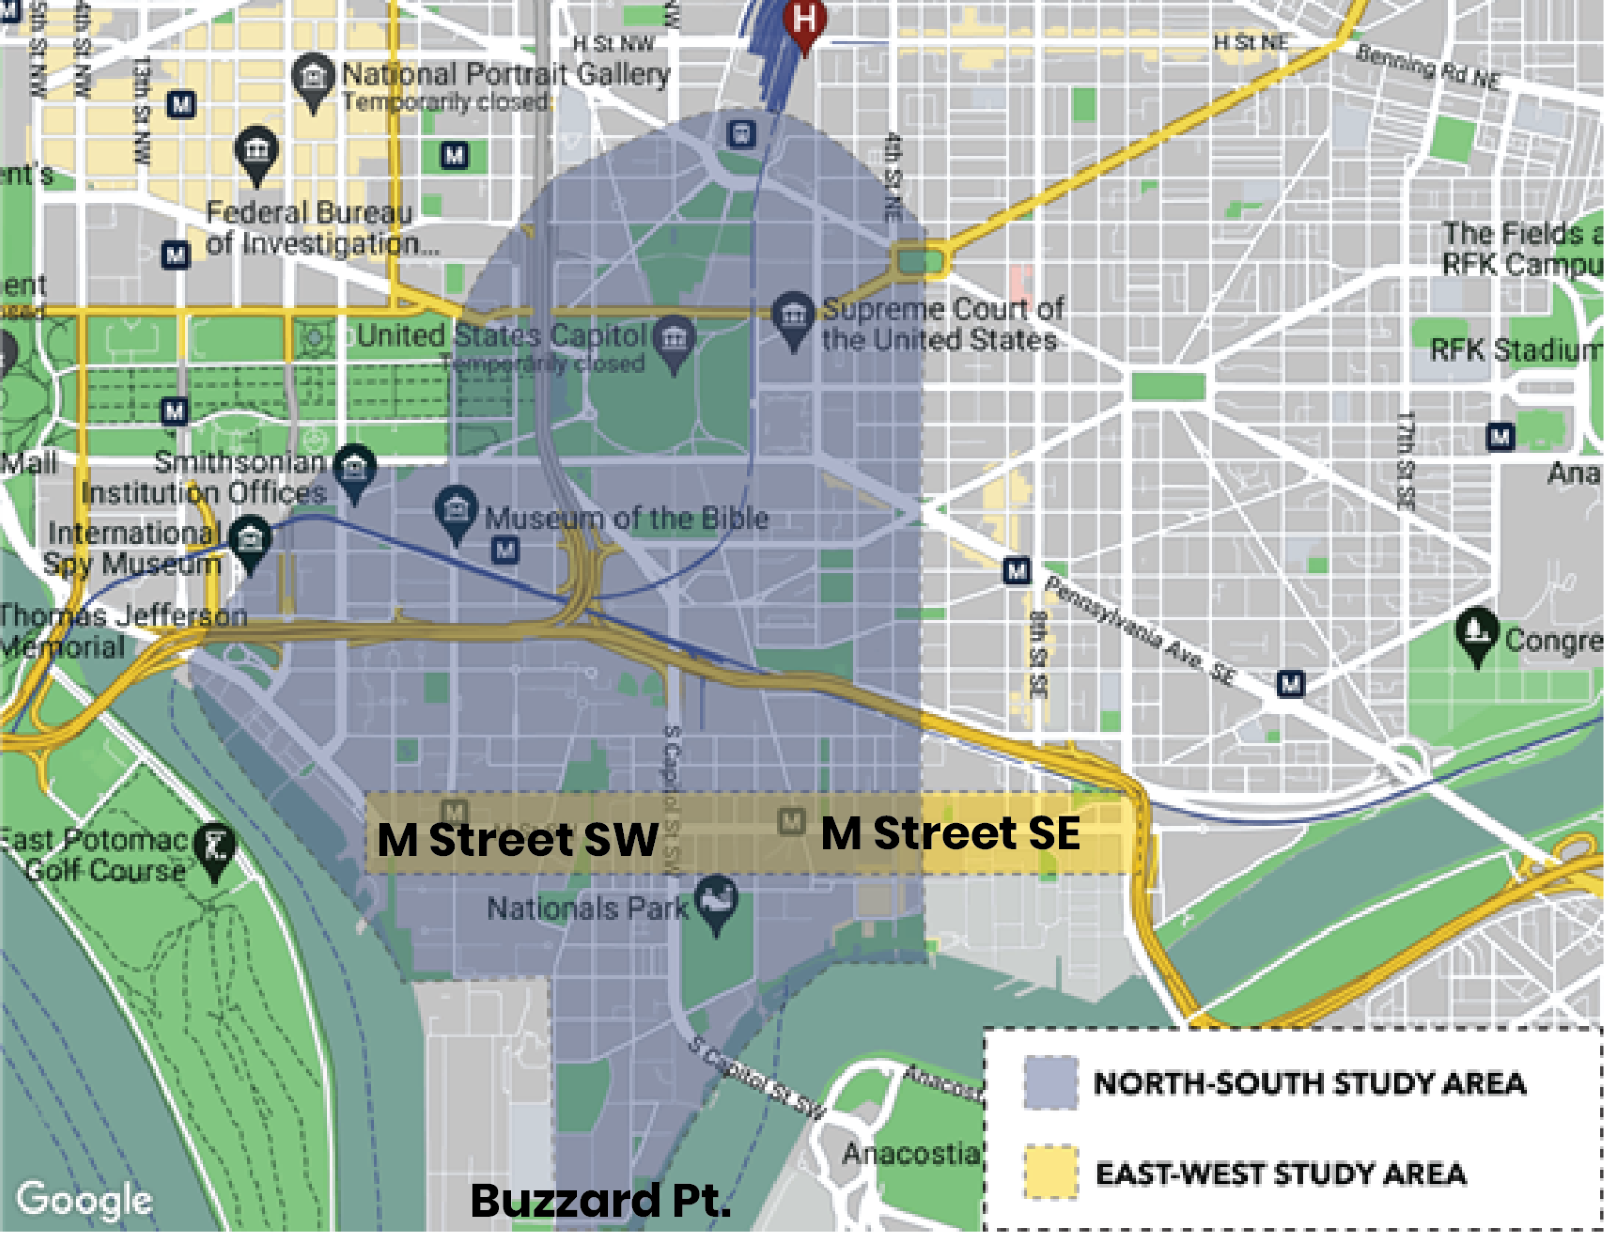 Map of Study Areas